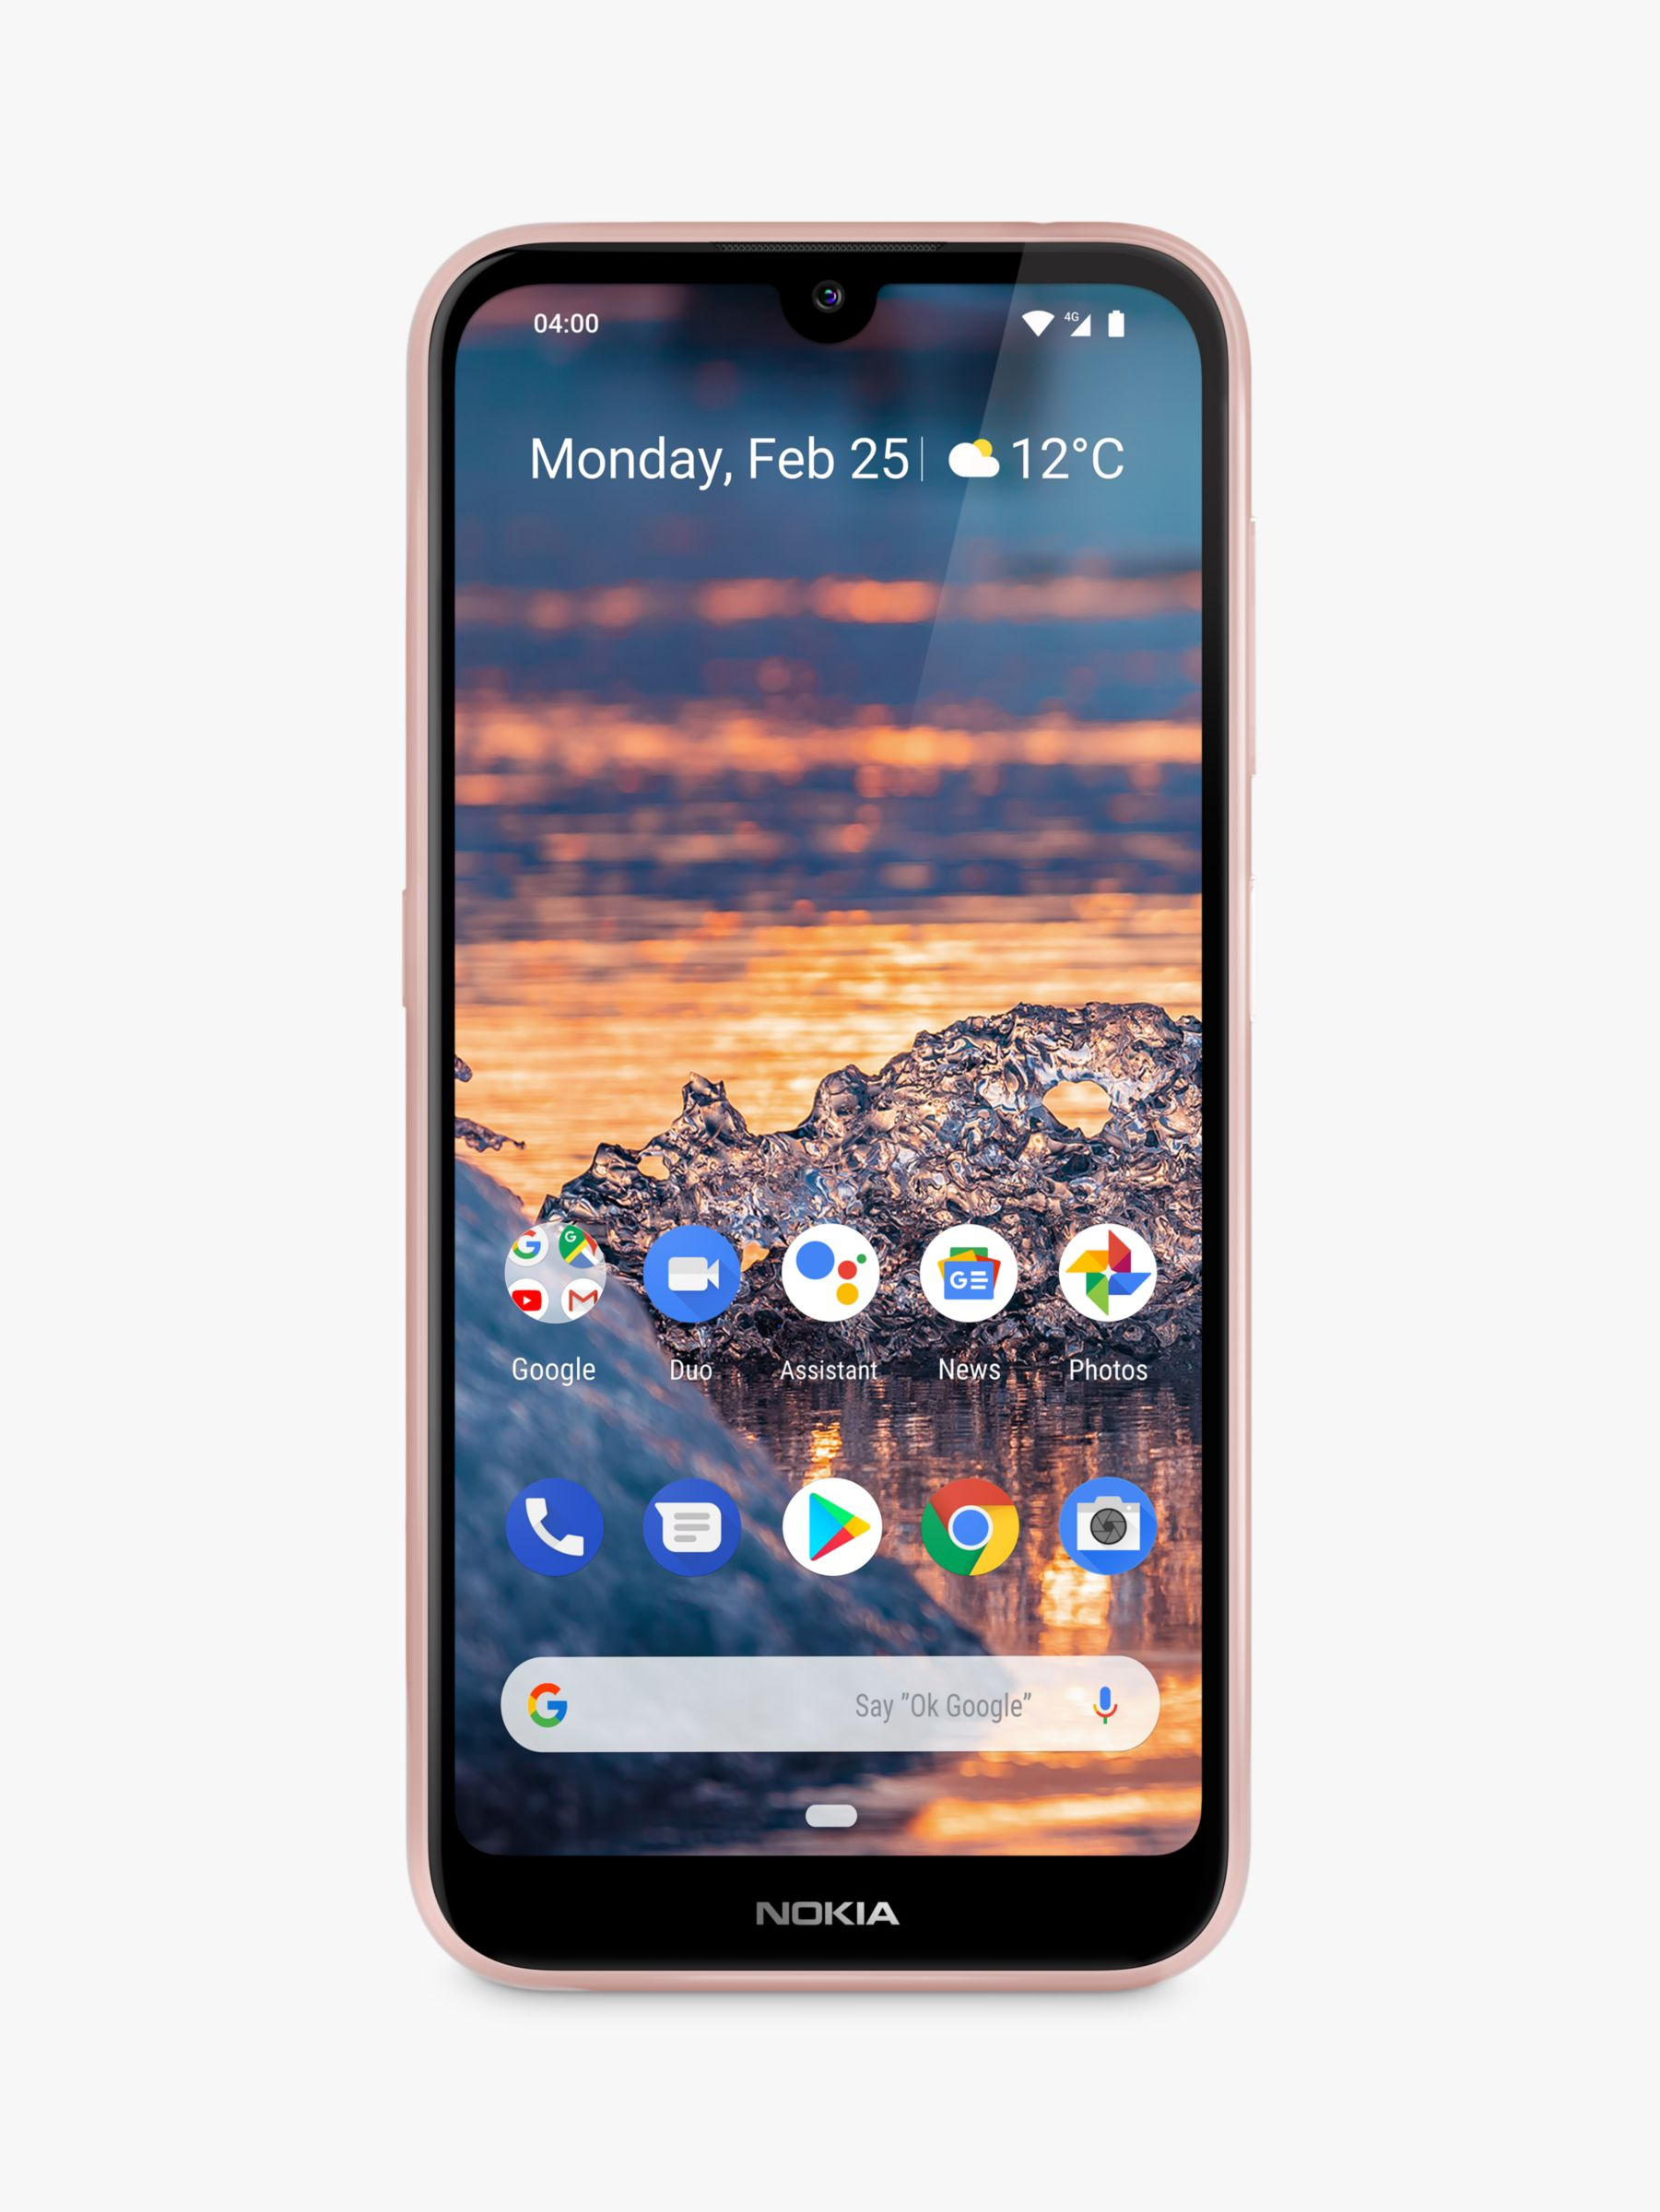 Nokia 4 2 Smartphone Android 5 71 4g Lte Sim Free 3gb Ram 32gb Silver At John Lewis Partners